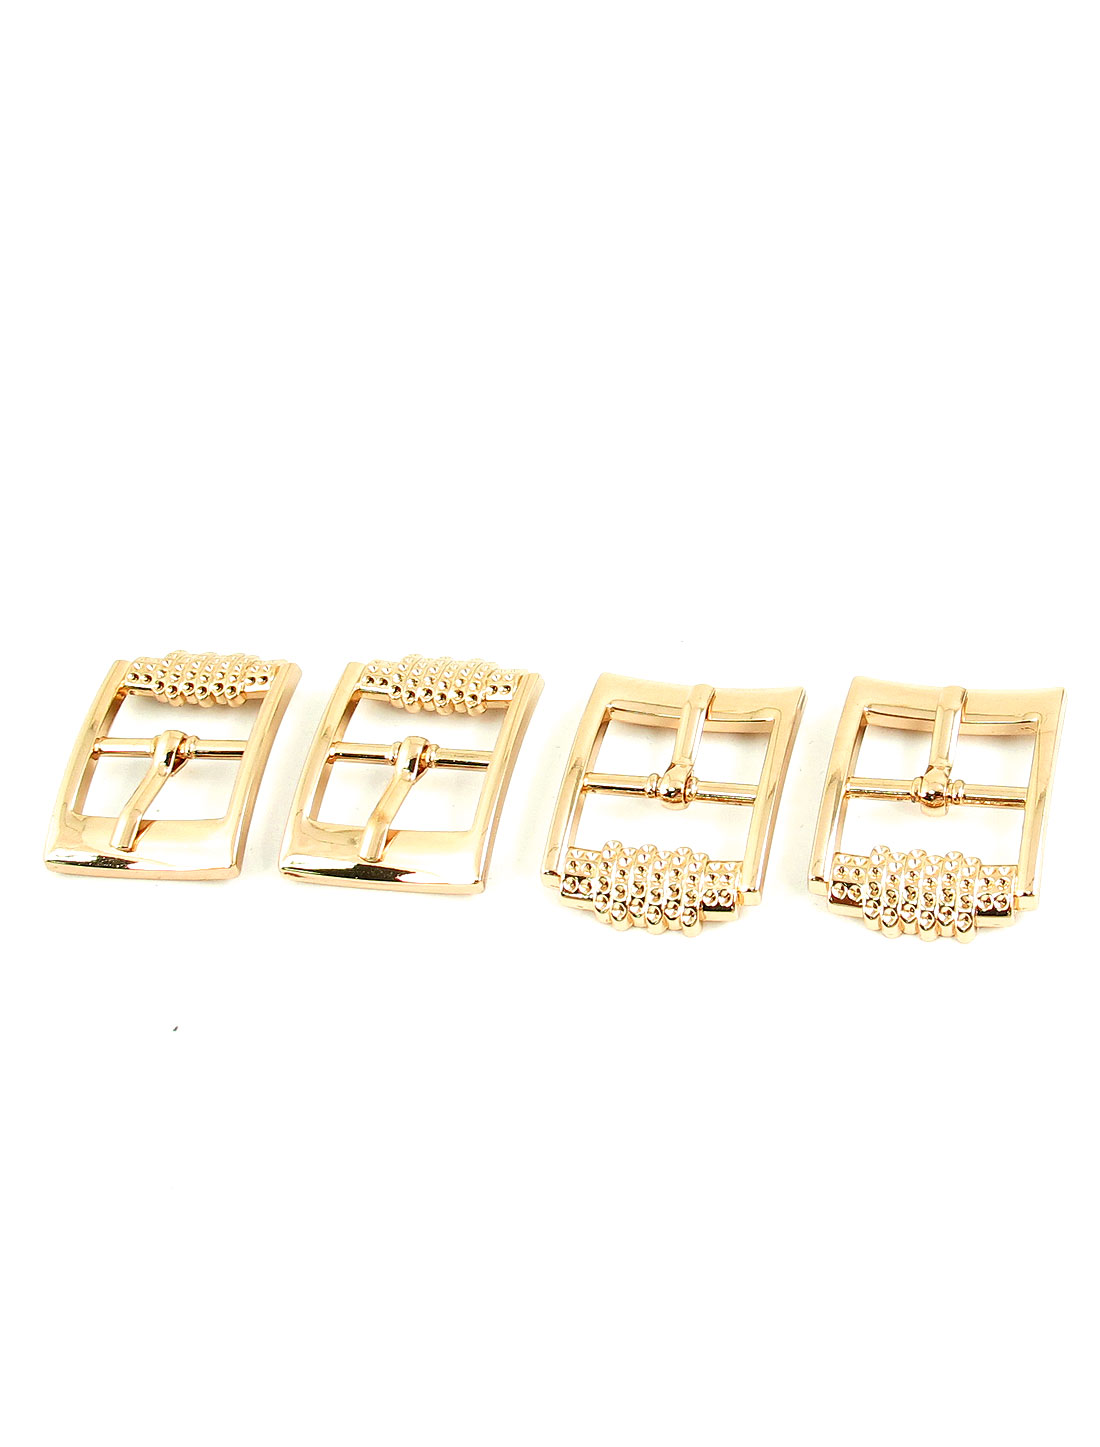 4 Pcs Gold Tone Metal Belt Waistband Single Pin Buckle